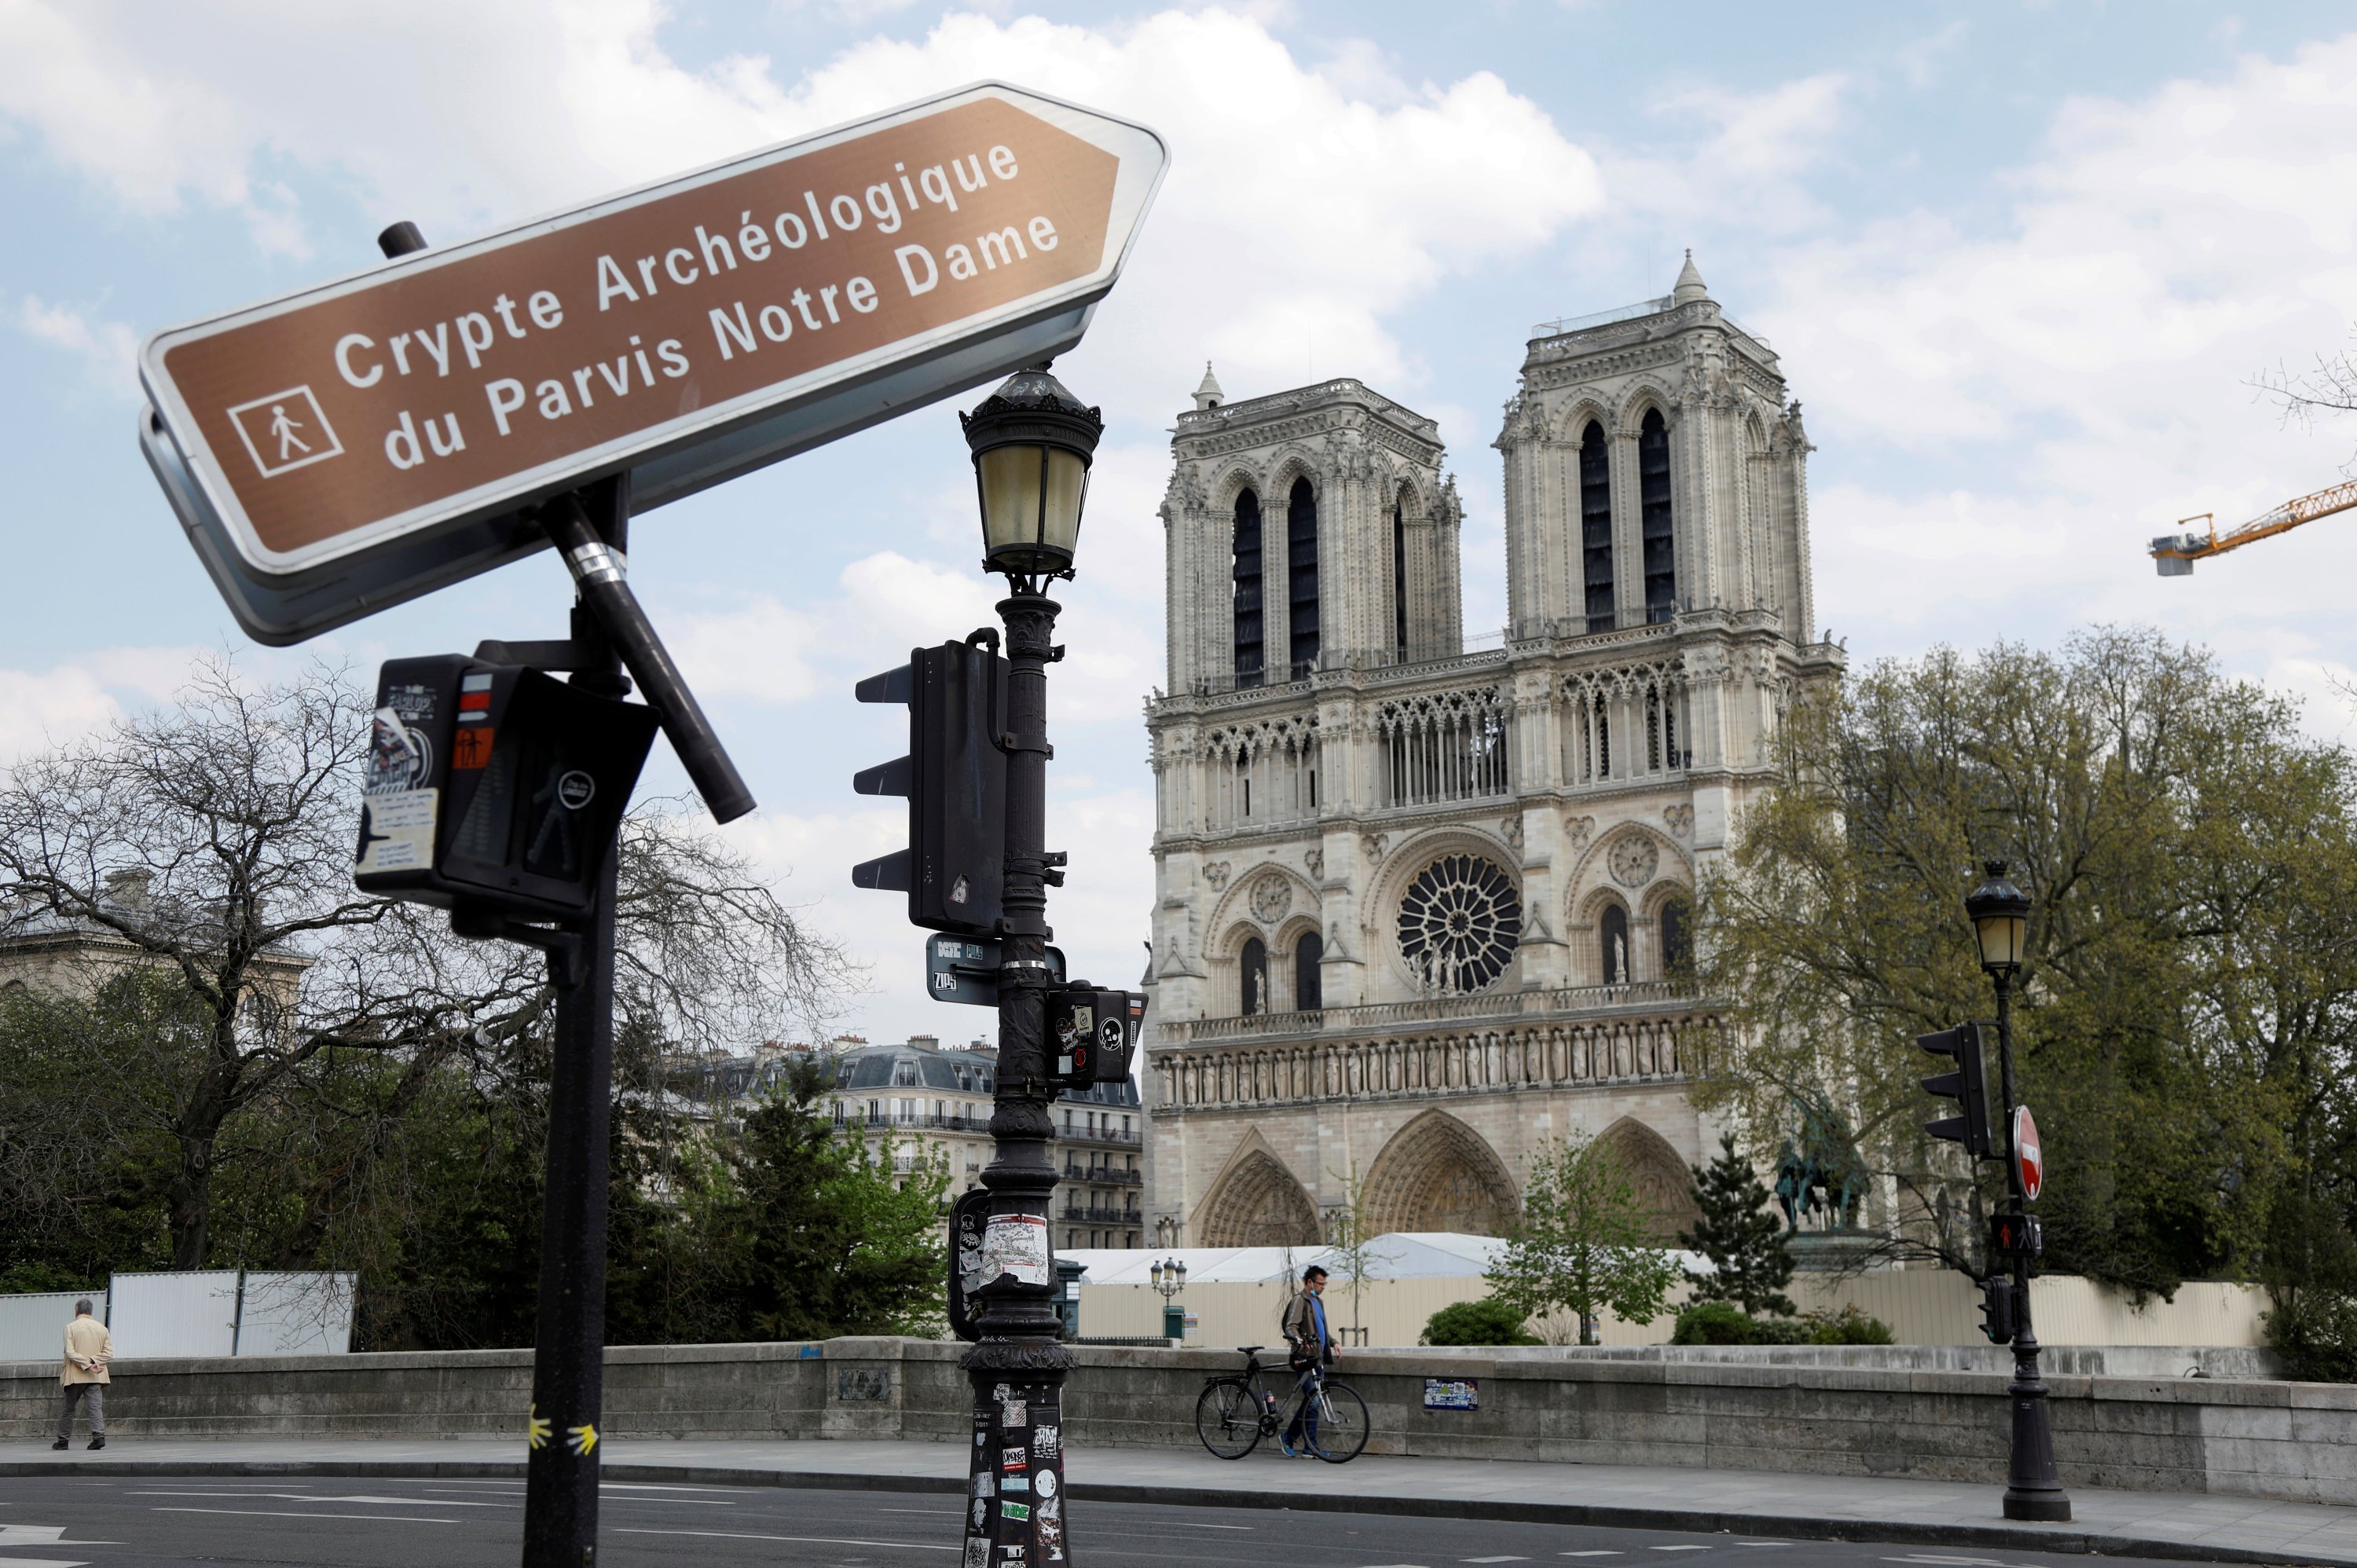 A view shows the Notre-Dame de Paris Cathedral, which was damaged in a devastating fire one year ago, as the coronavirus disease (COVID-19) lockdown slows down its restoration in Paris, France, April 11, 2020.(REUTERS)